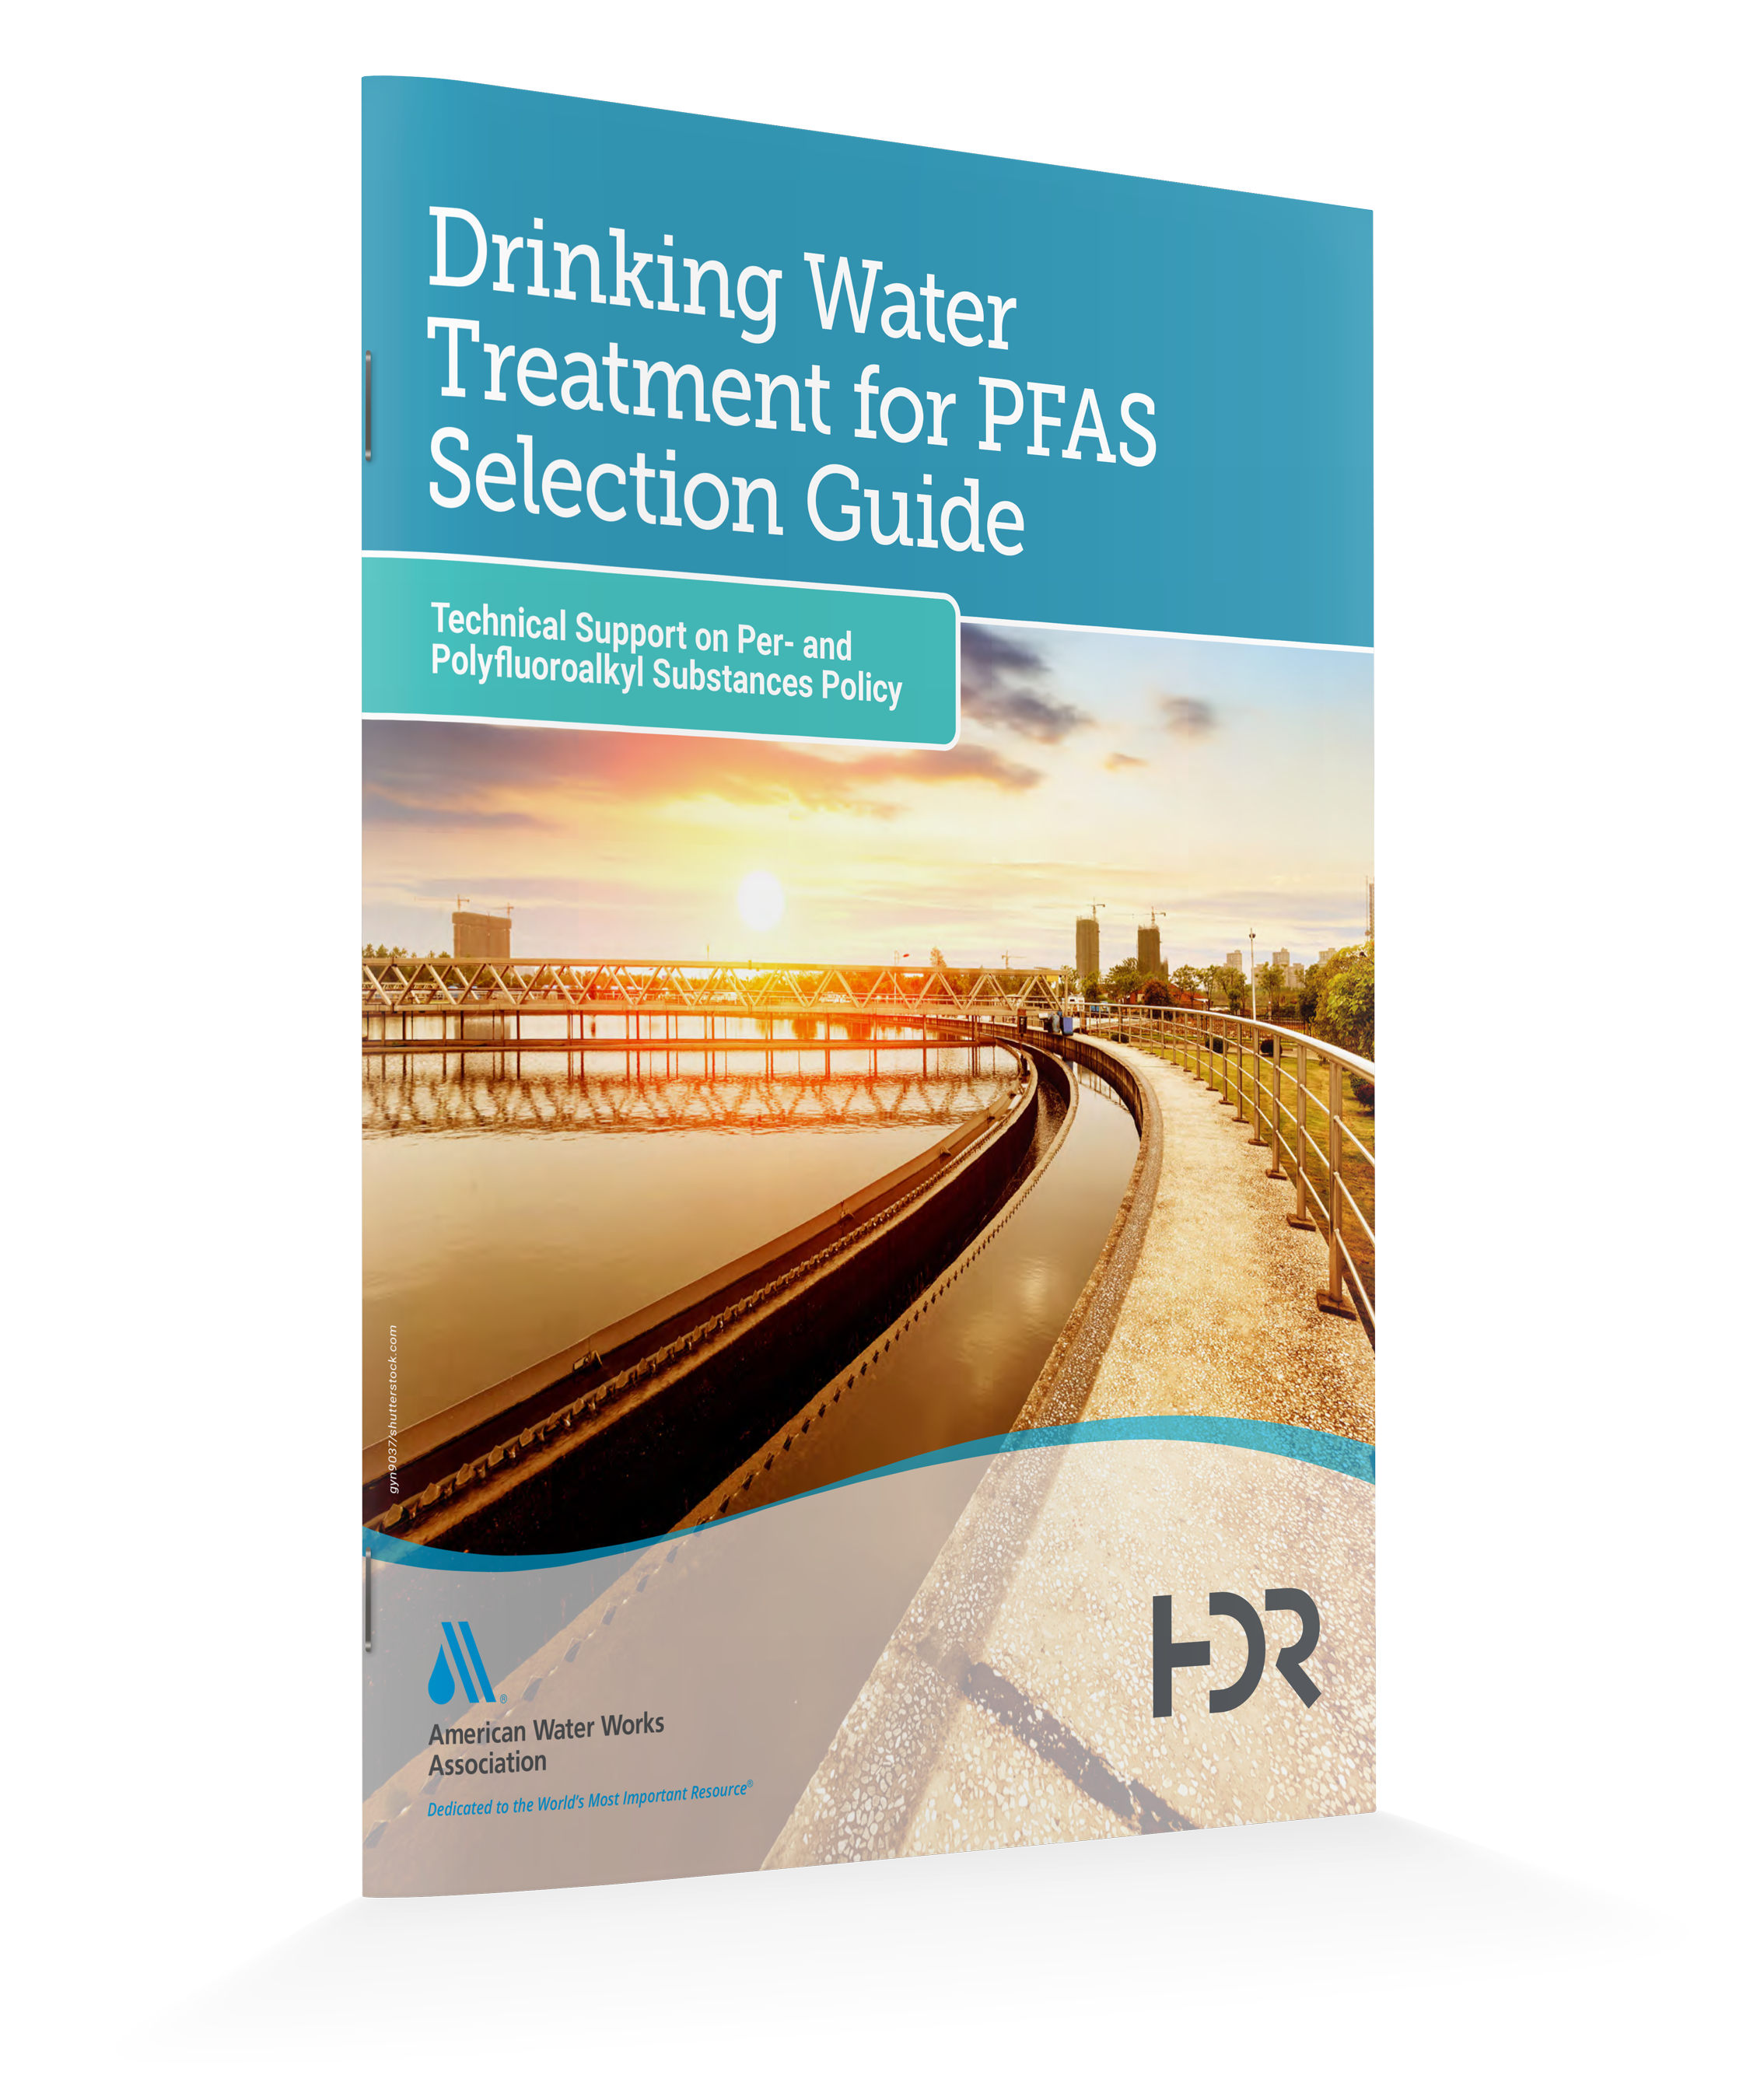 Drinking-Water-Treatment-for-PFAS2